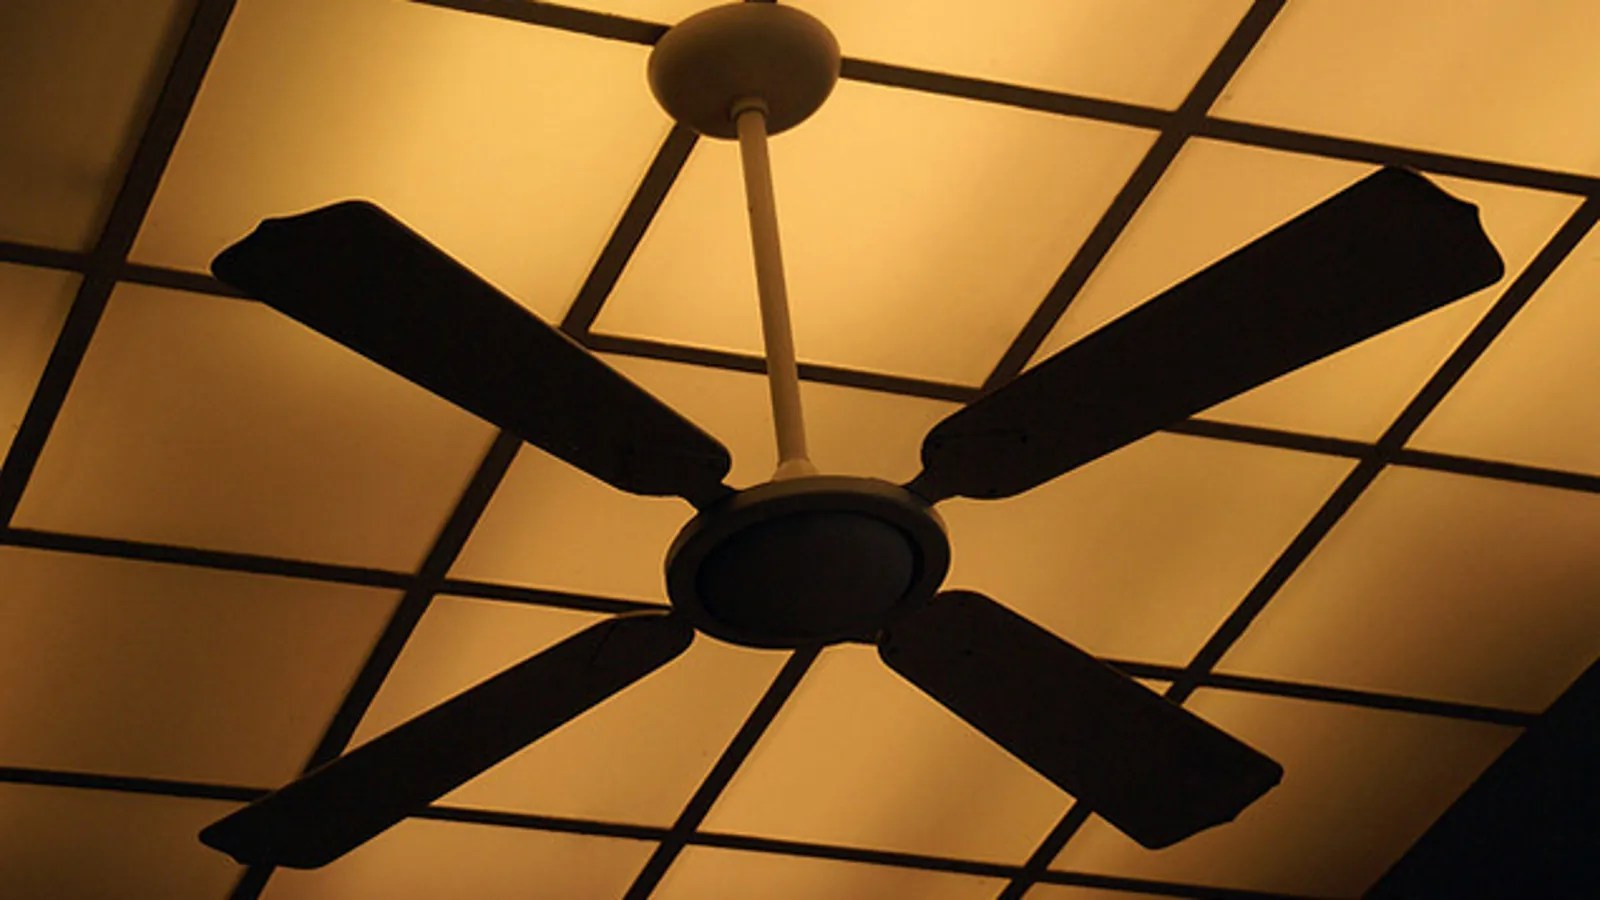 Small Ceiling Fans For Sale Switch Your Ceiling Fan S Spin Direction To Warm Your Home In The